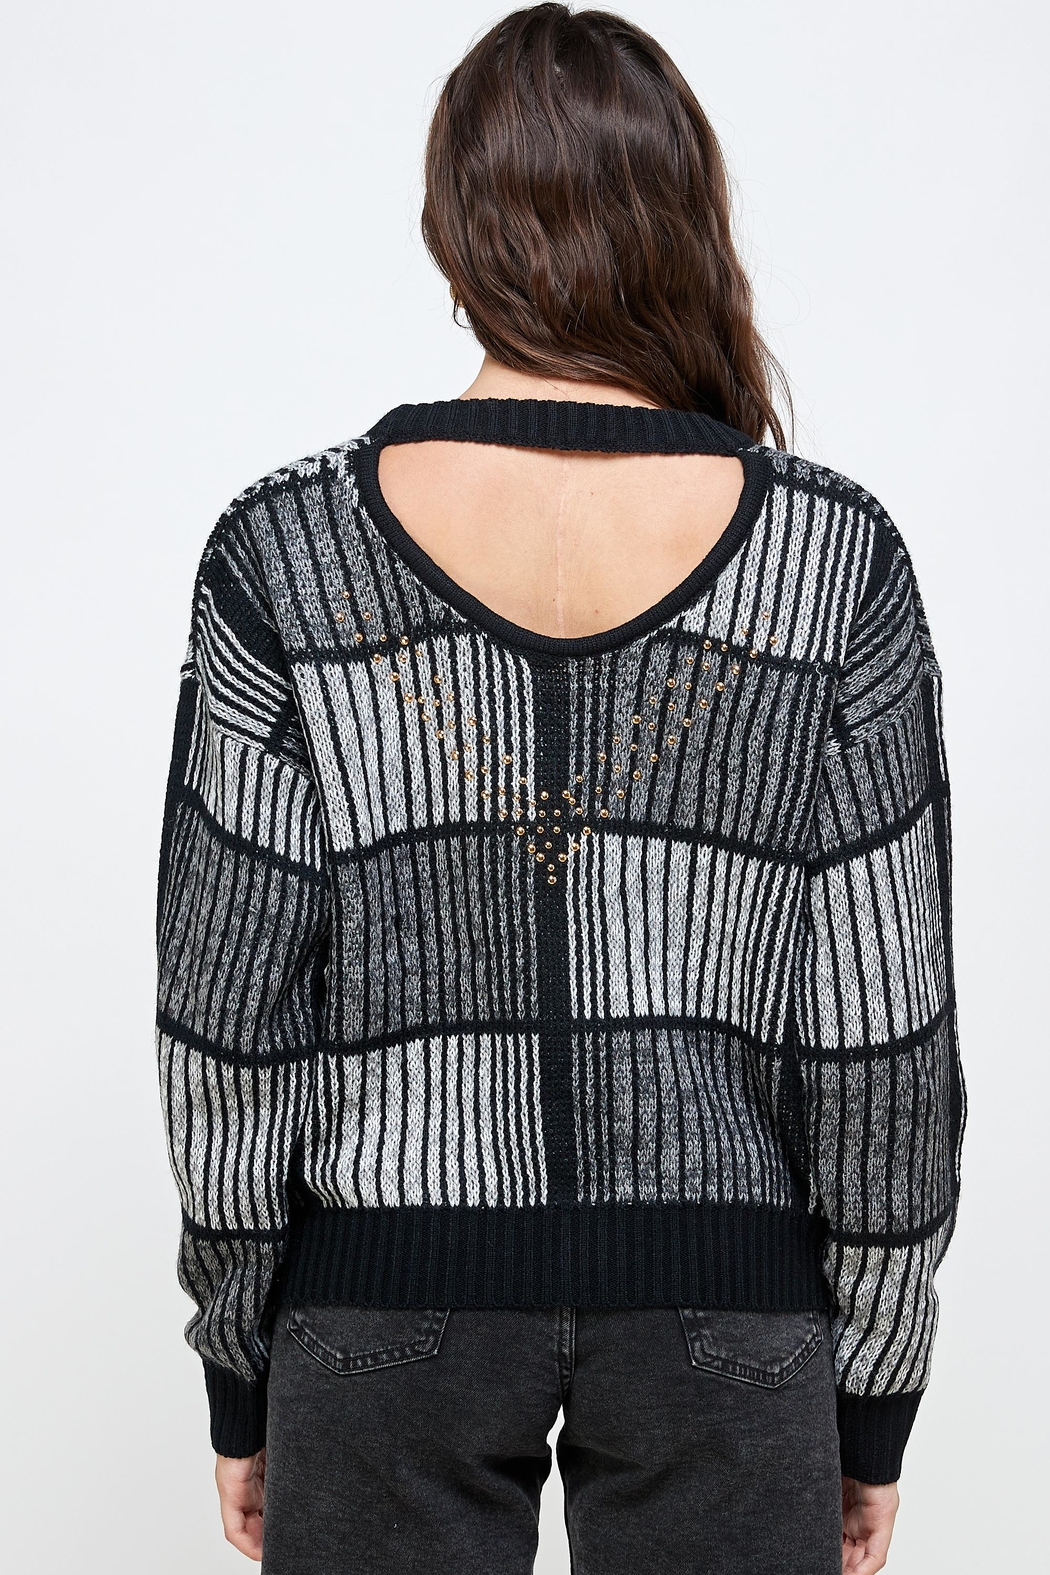 Kaii Open Back Studded Sweater Top - Back Cropped Image